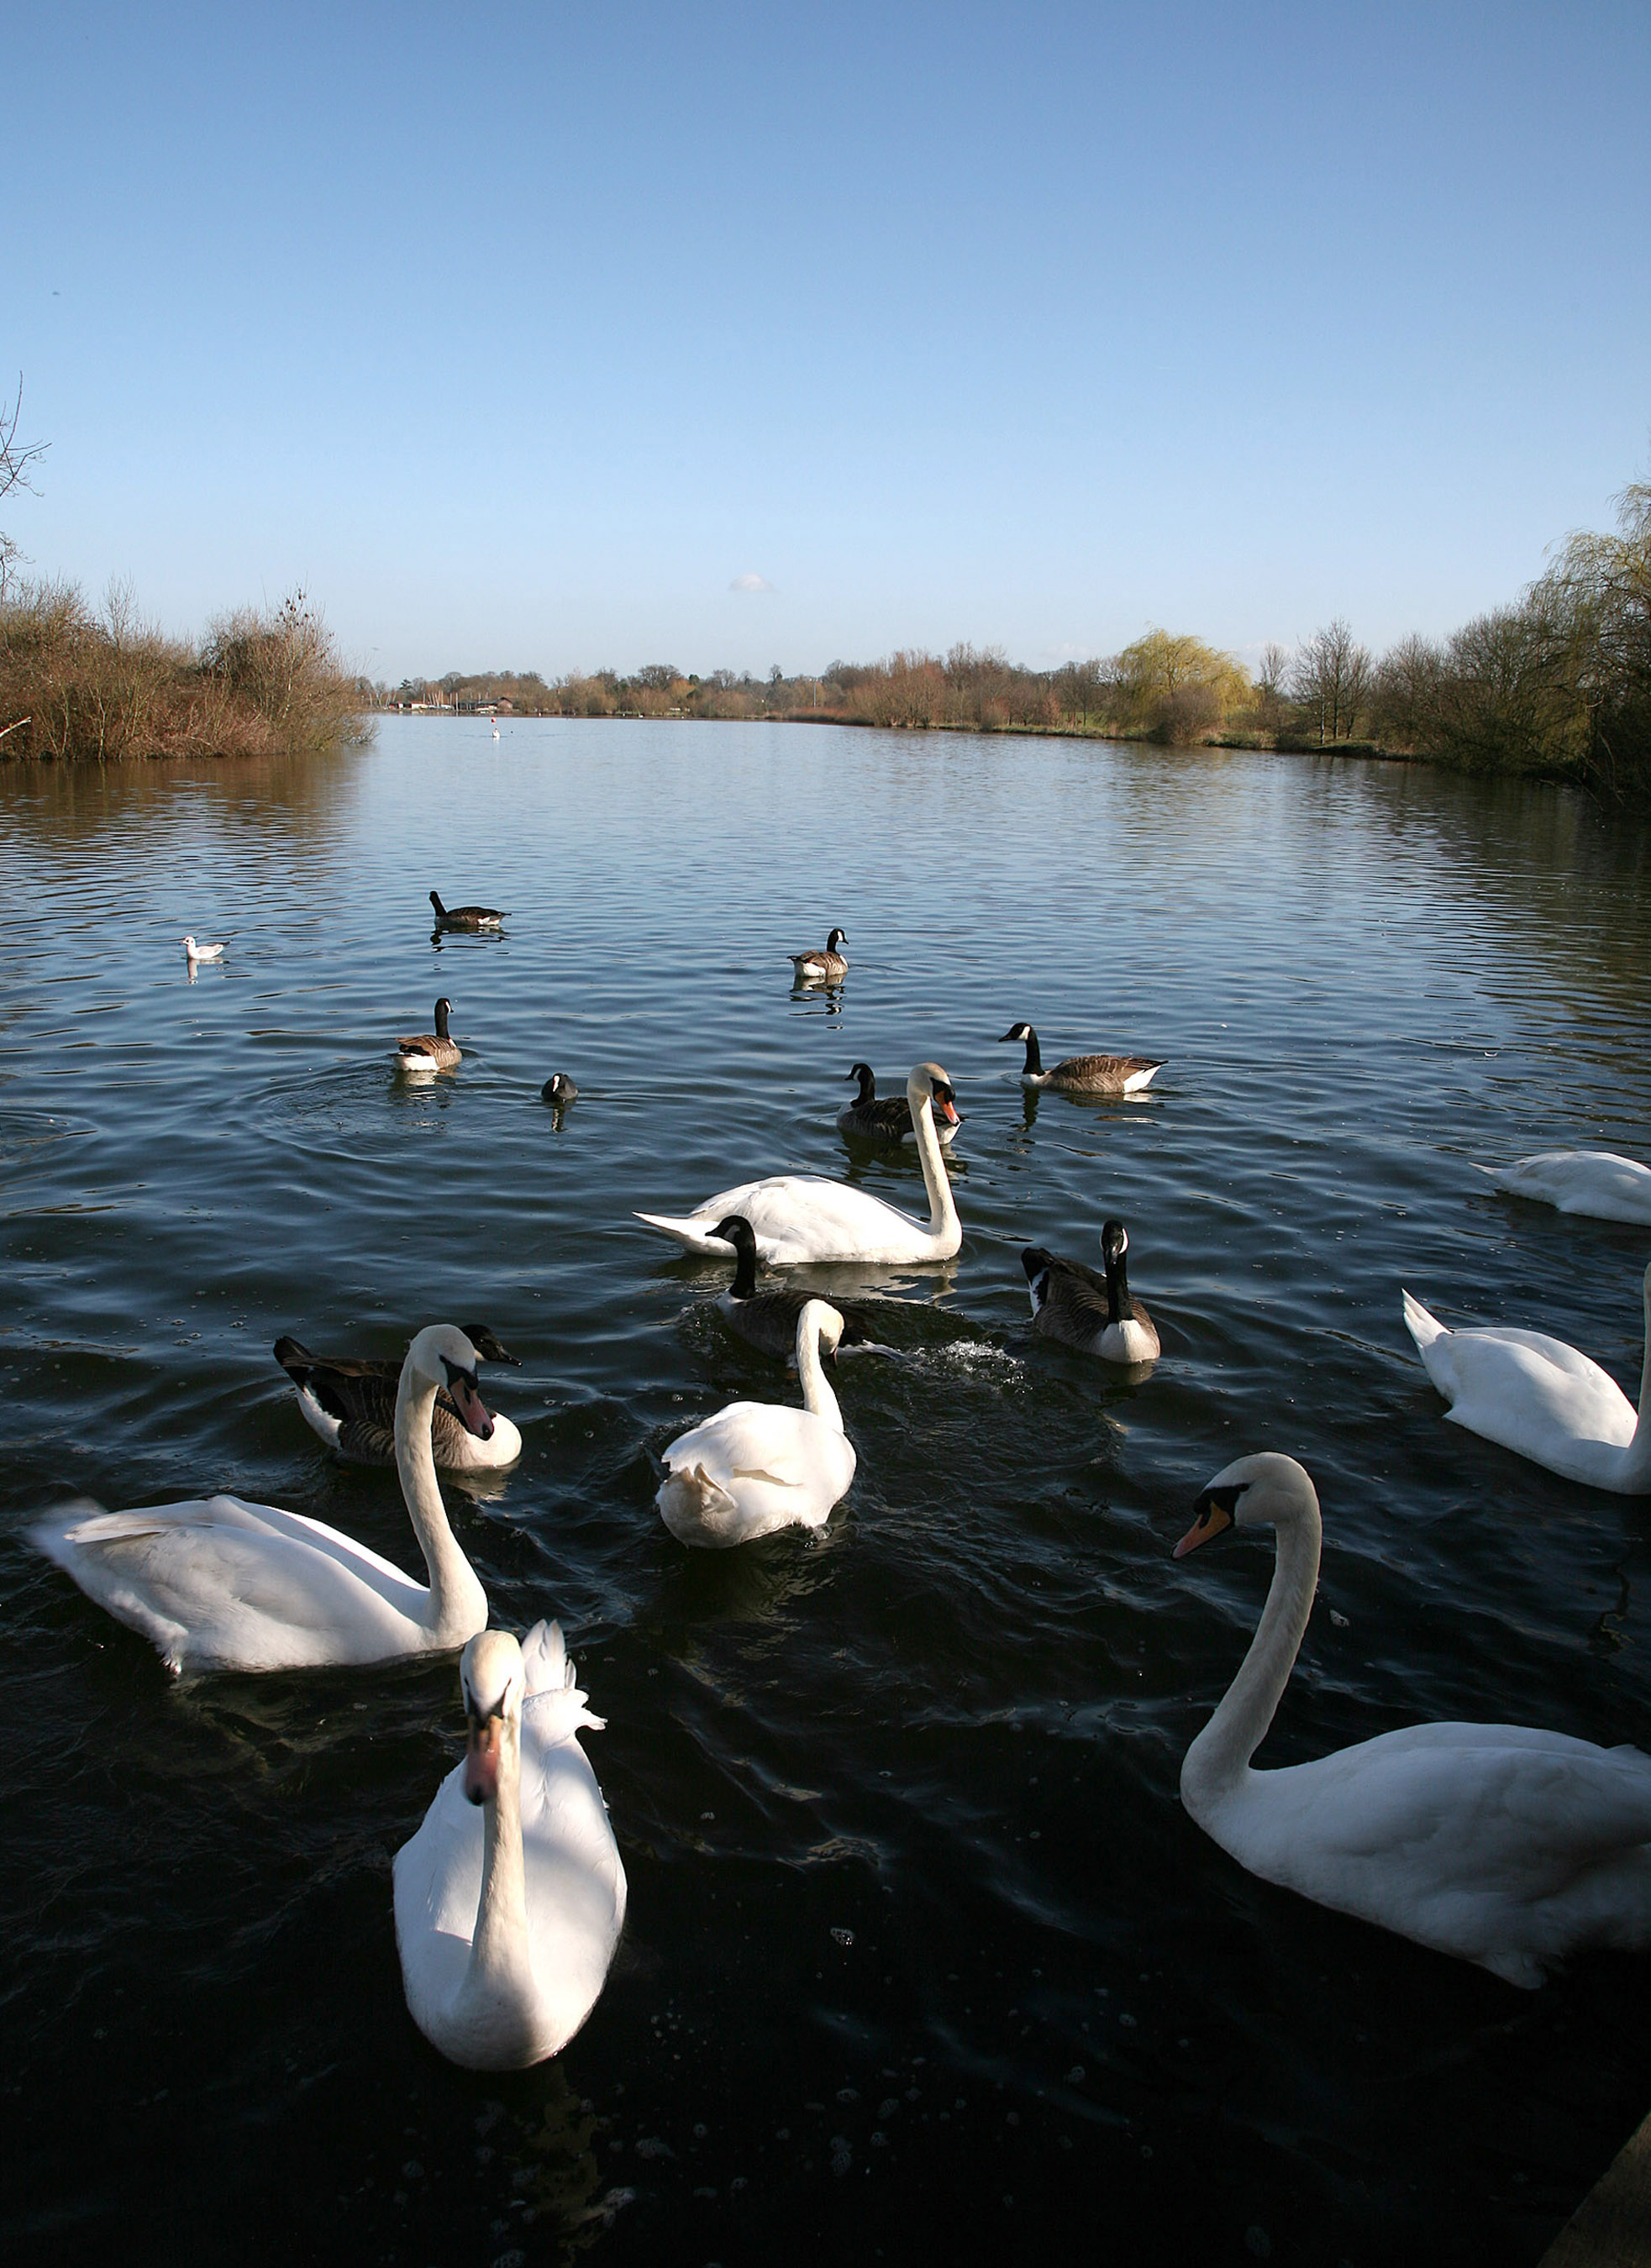 Dinton Pastures swans on lake